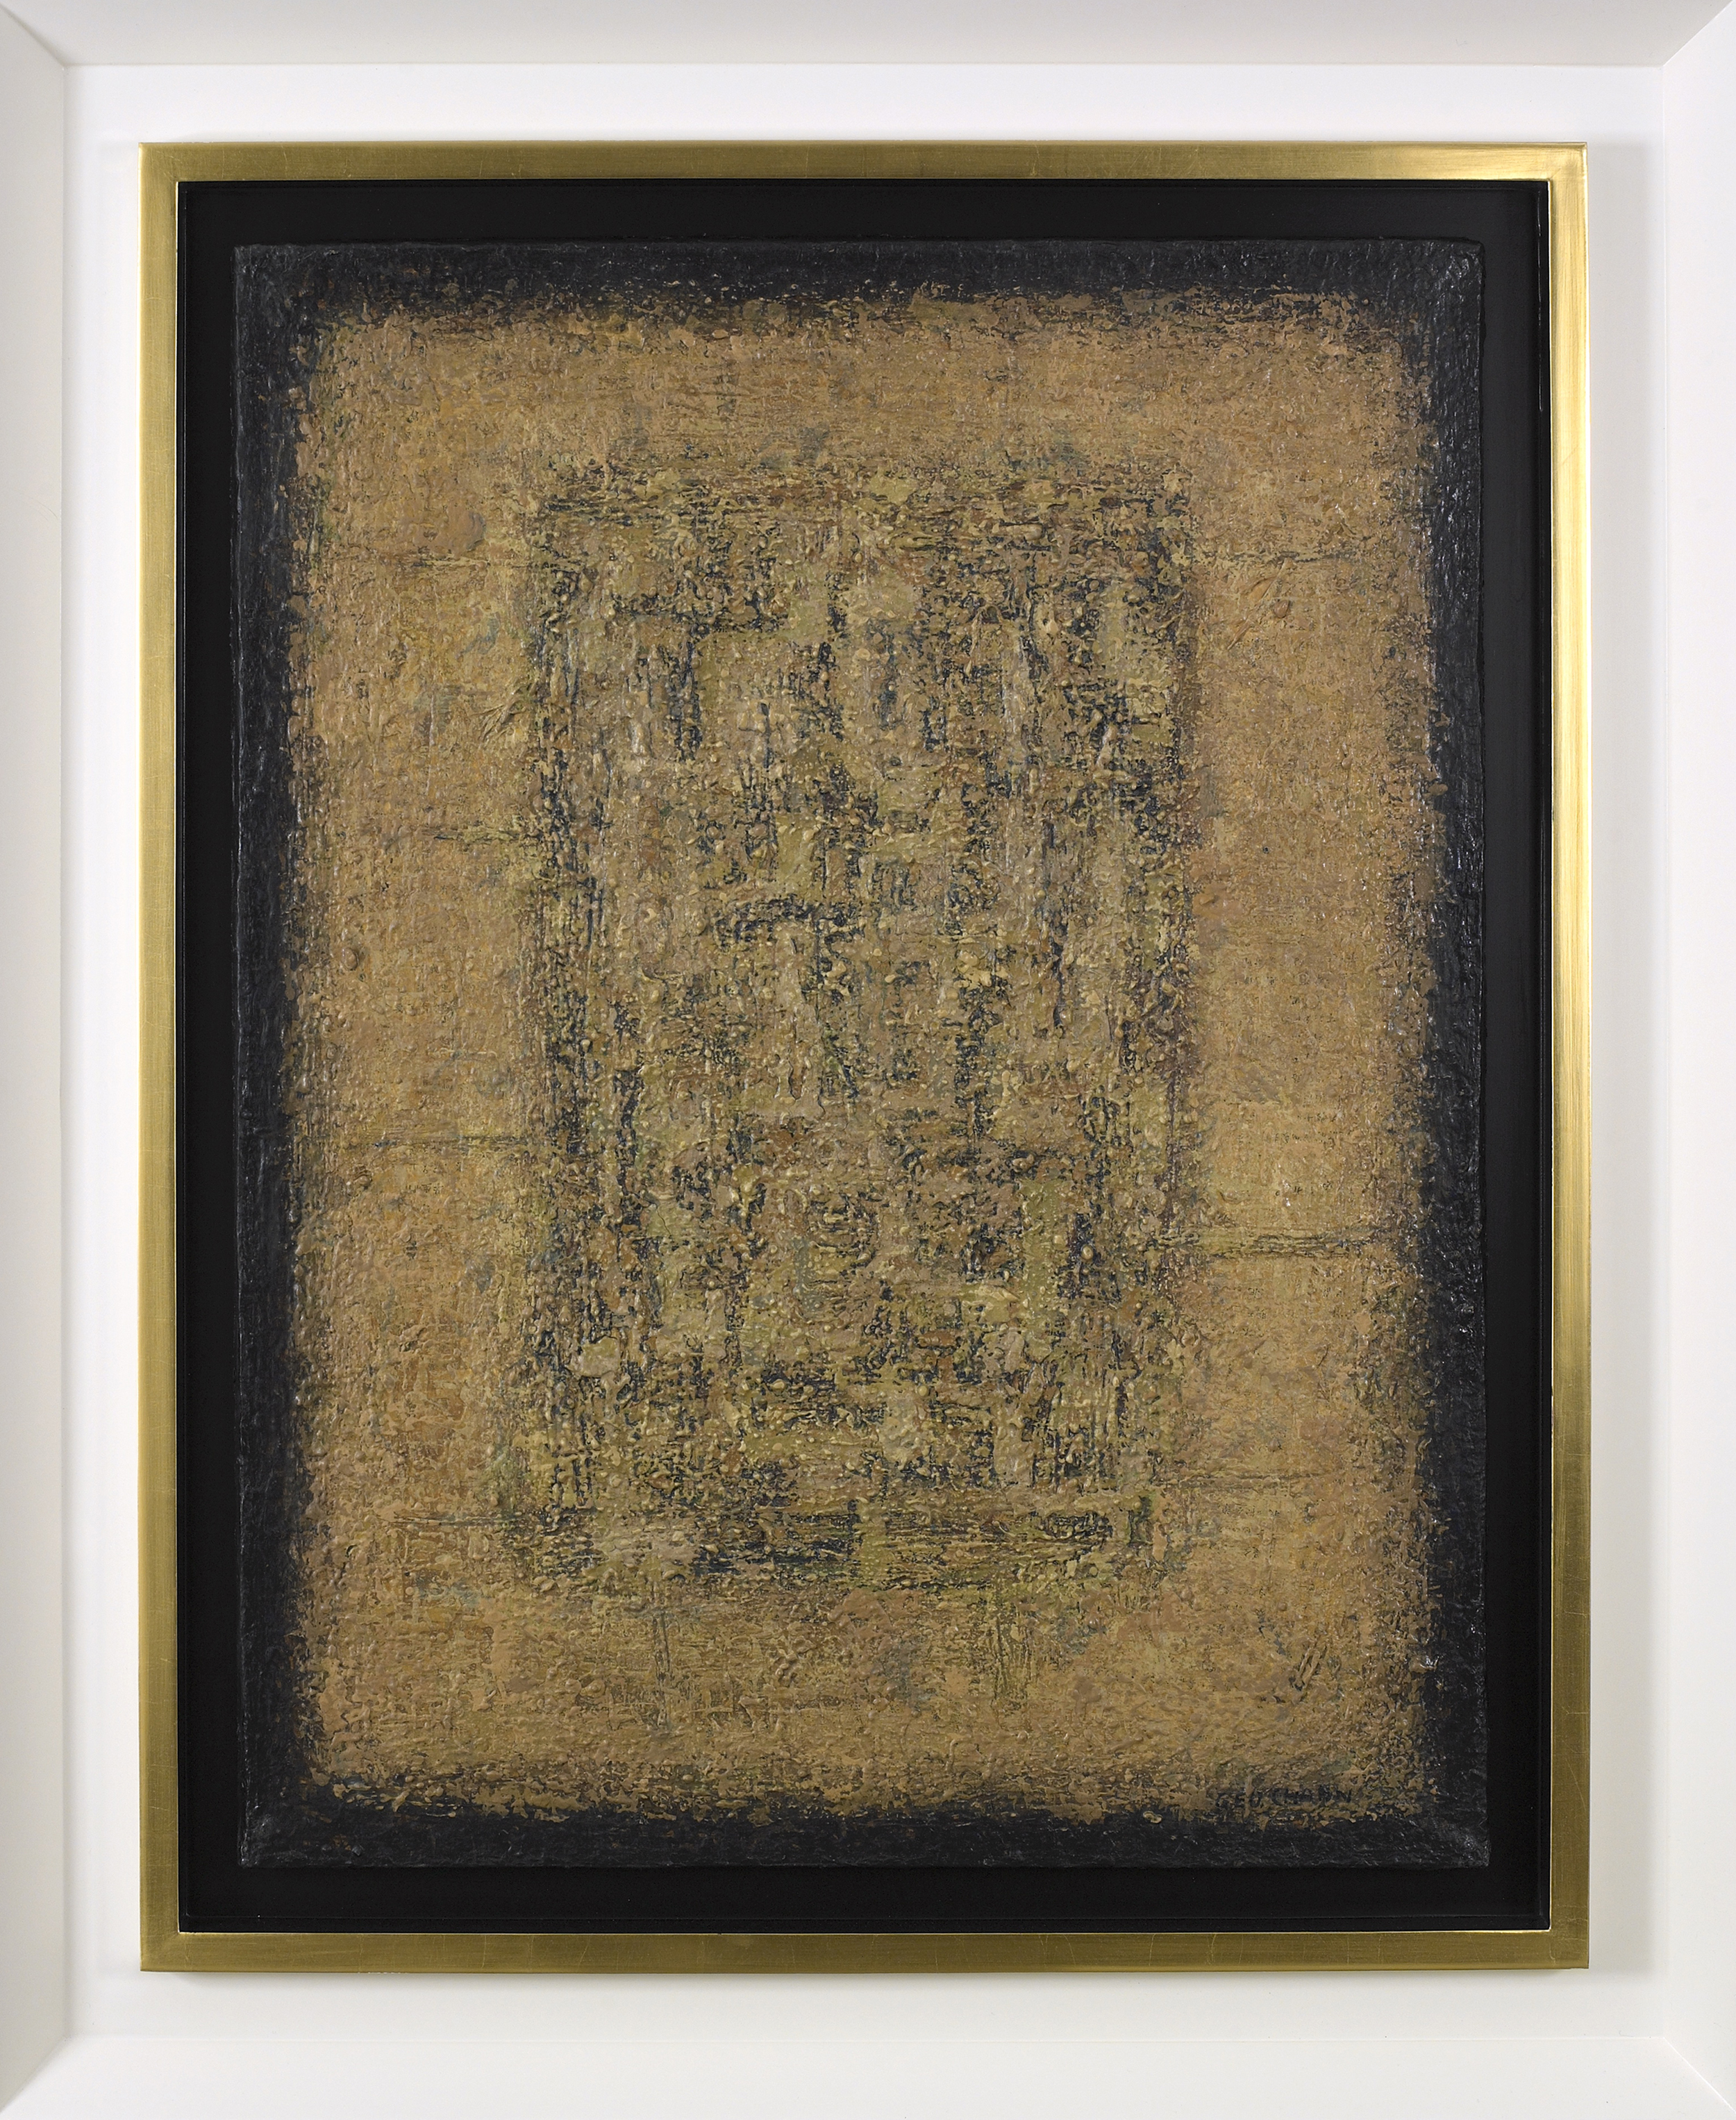 Mottled Pebble,   1968, Oil on canvas, 30 1/2 x 23 1/4 inches